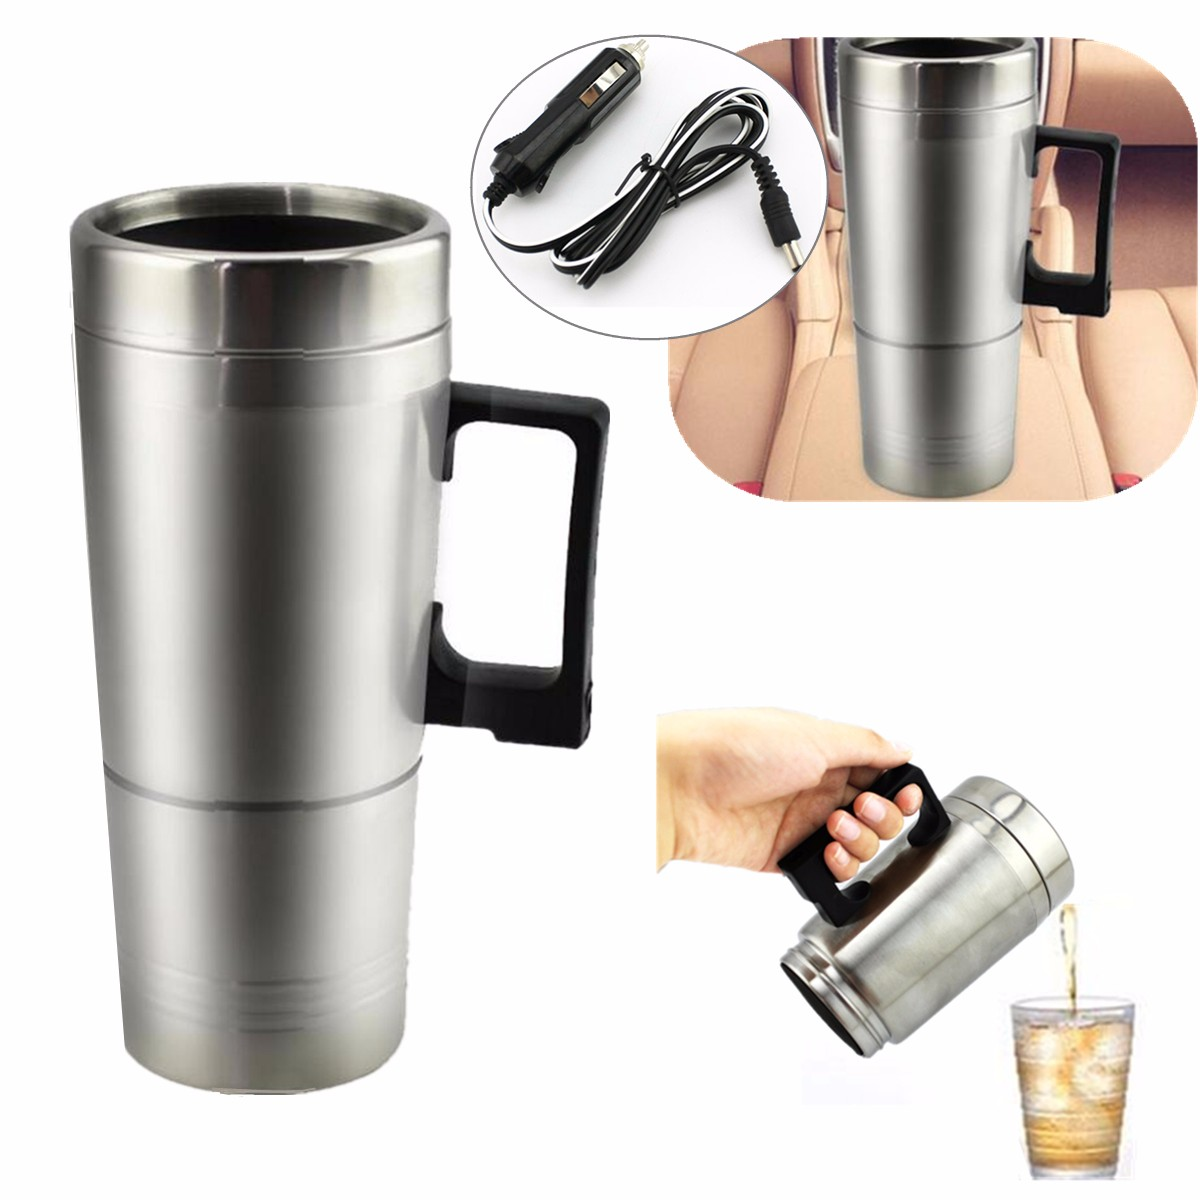 Simple 12v 300ml Portable in Car Coffee Maker Tea Pot Vehicle Heating Cup Lid Outdoor Water